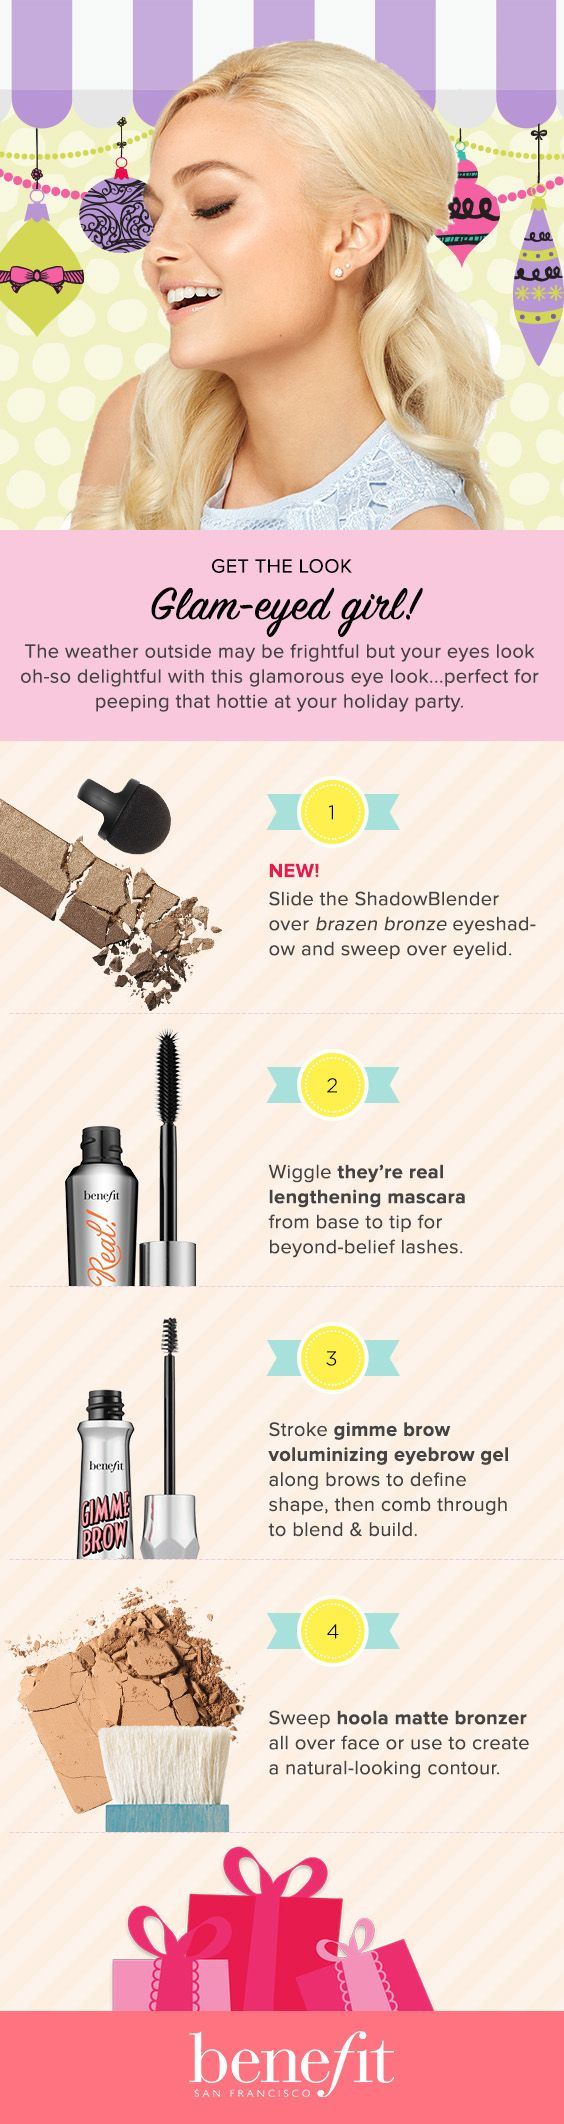 Get the glam eye look! Sweep on they're real eyeshadow & mascara, apply gimme brow to the brows and finish with hoola for a natural-looking contour! xx